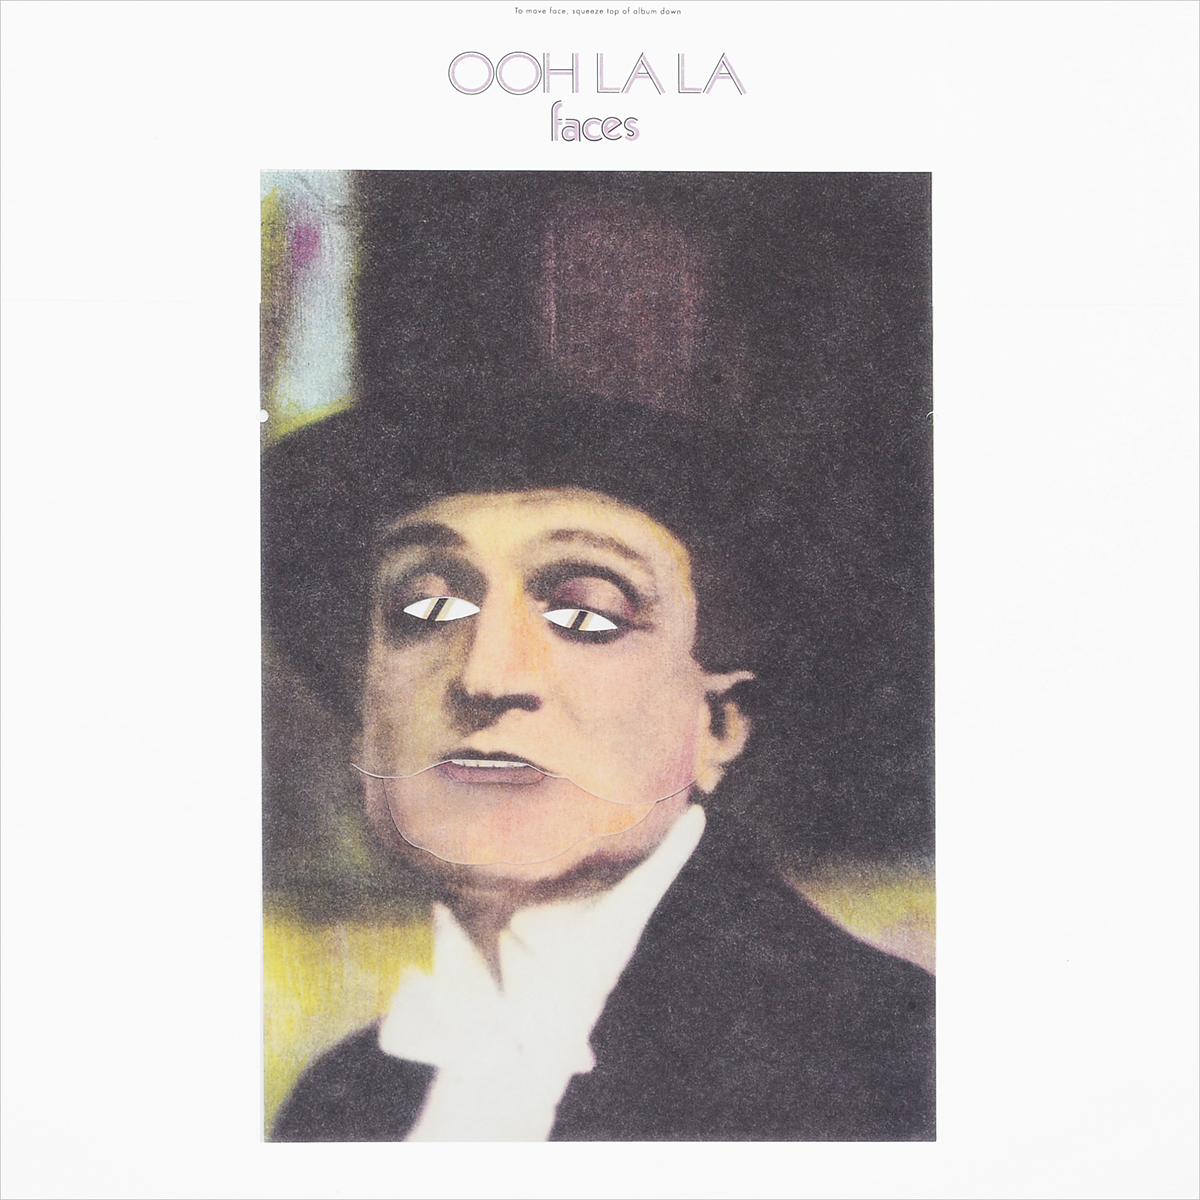 Faces Faces. Ooh La La (2 LP) la pastel 3 30 30